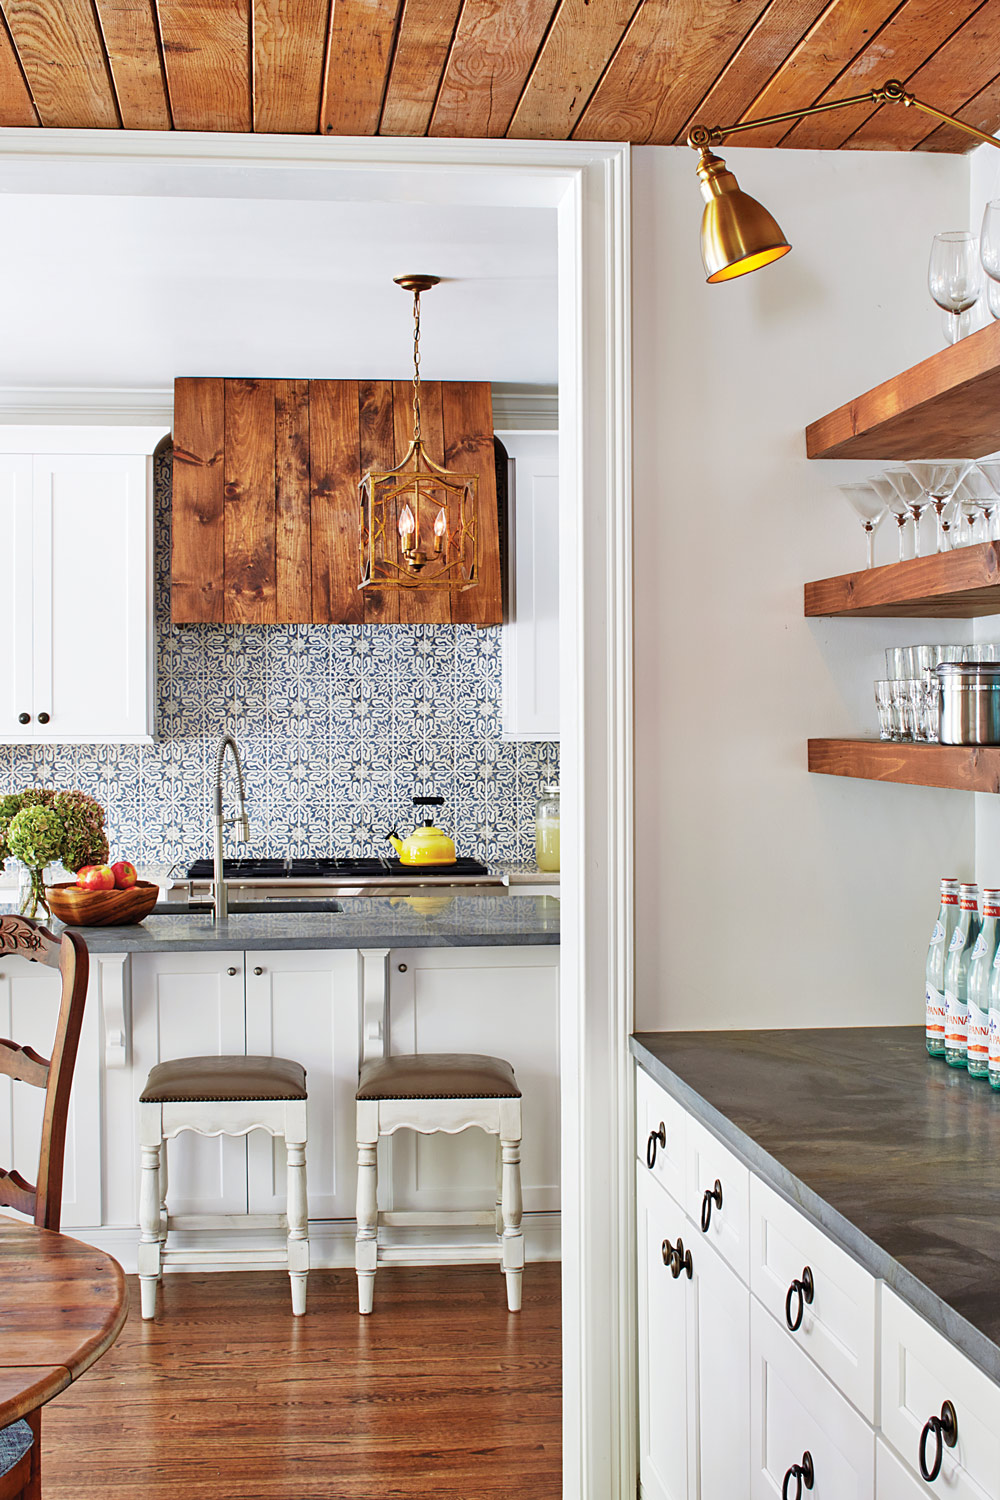 The homeowners splurged on Walker Zanger tile to give the space personality. They saved money by using a simple pine vent hood.